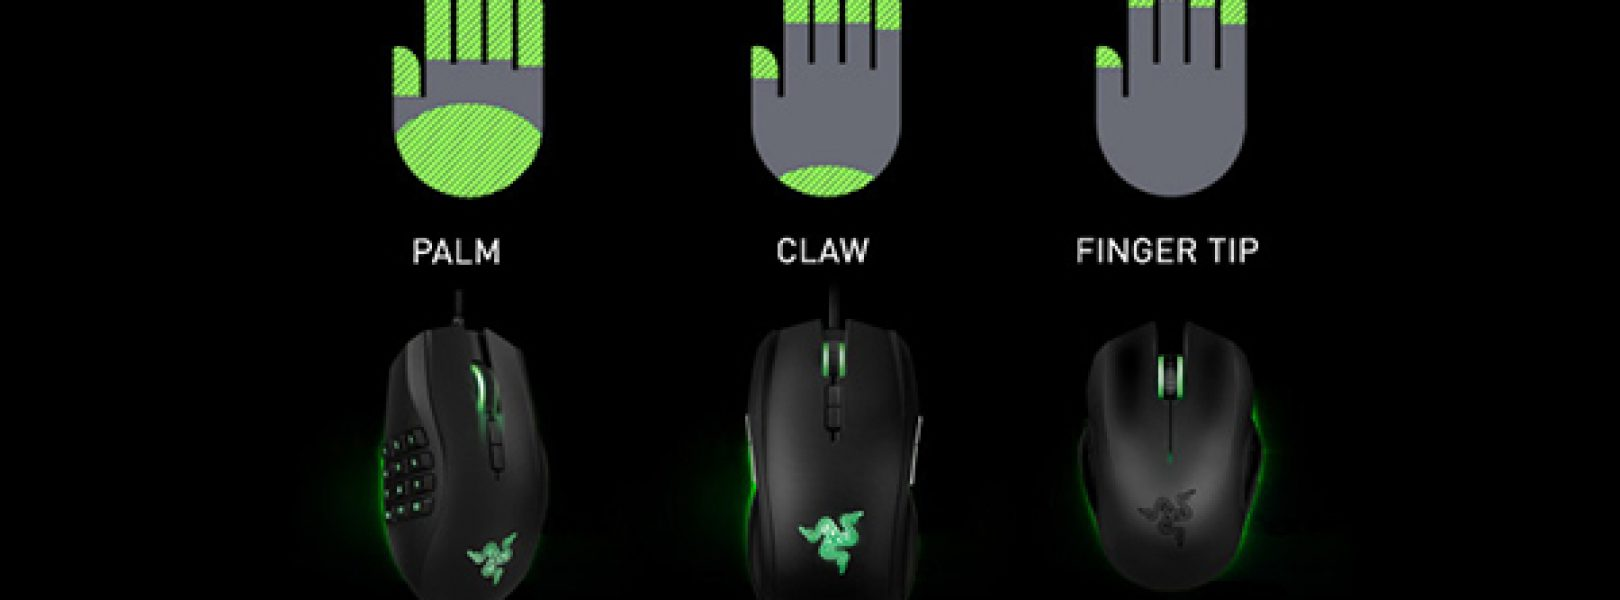 Razer Page 5 Capsule Computers Mouse Ouroboros Black Choose Your Perfect With Razers Selection Tool